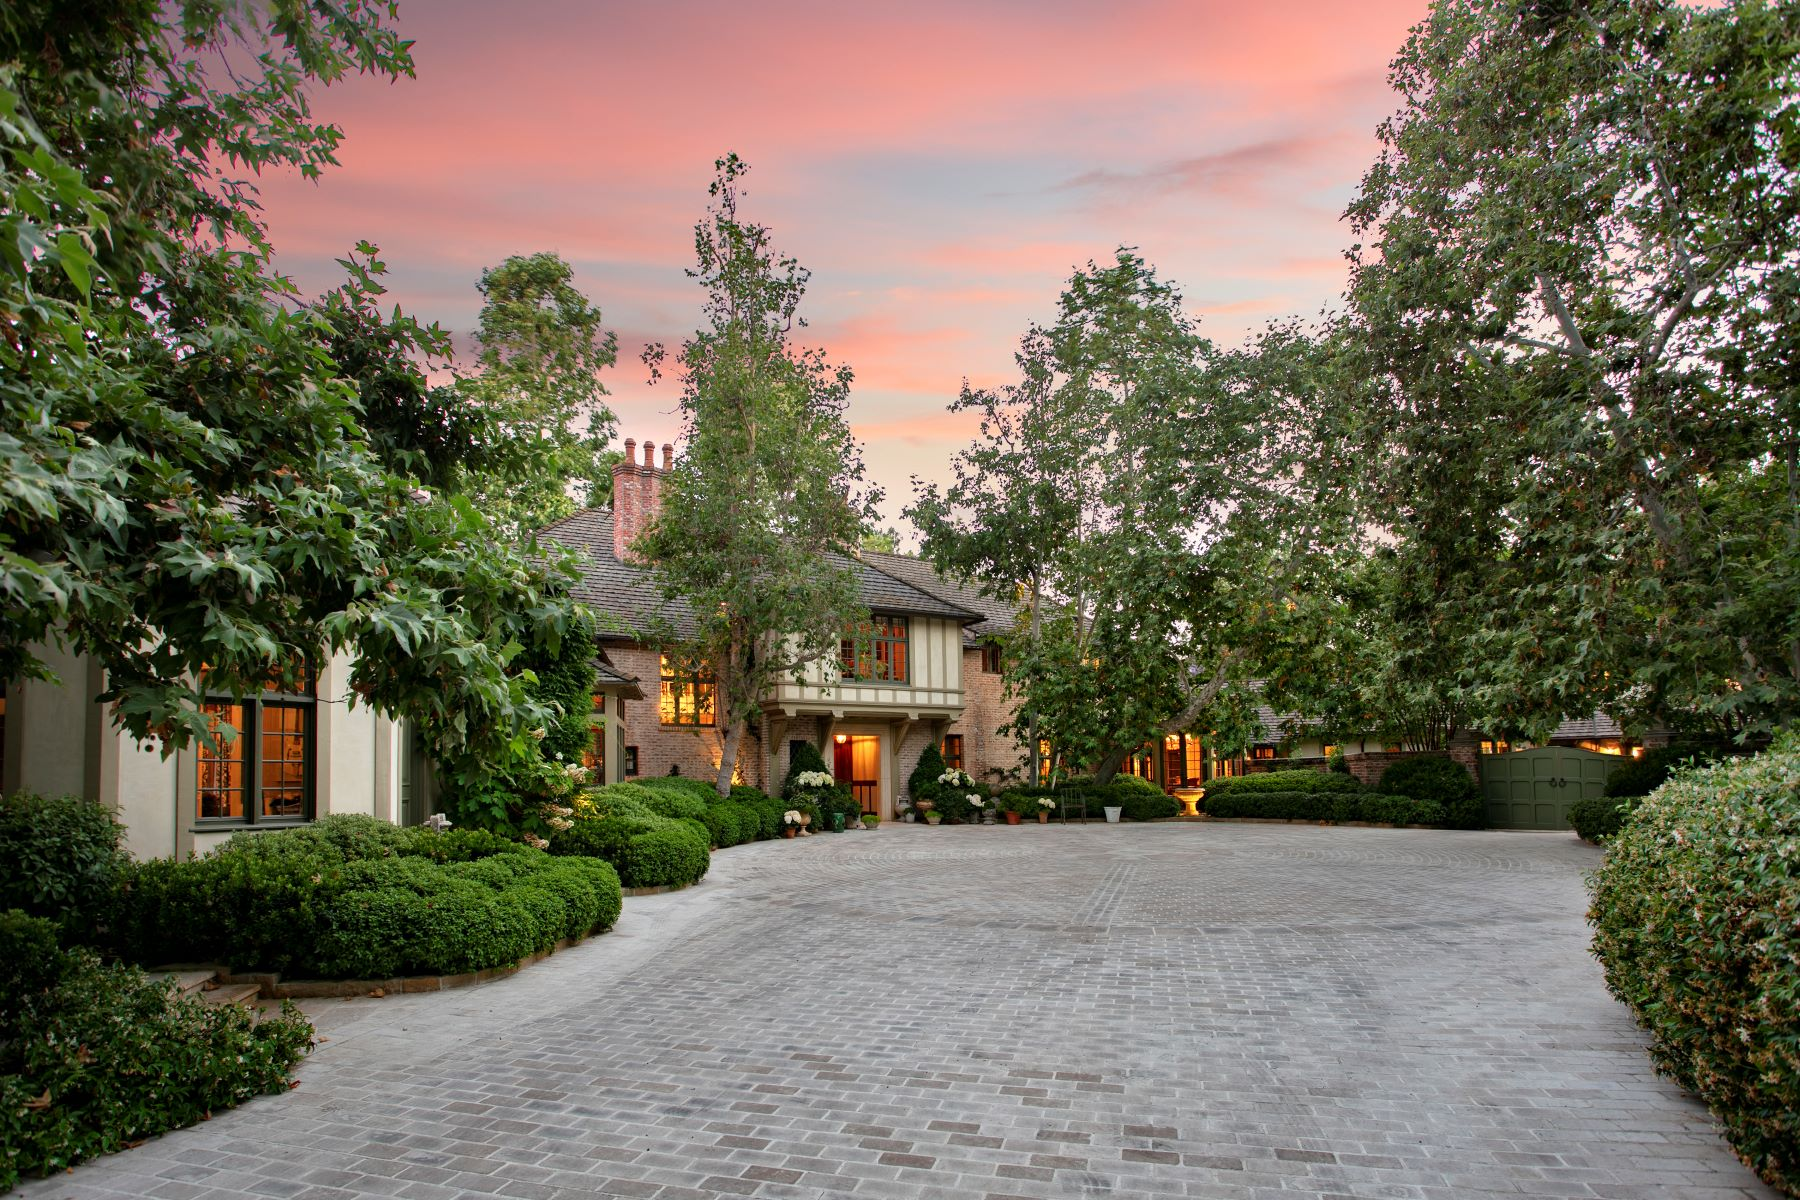 Property for Sale at Beverly Hills English Estate 1201 Tower Grove Drive, Beverly Hills, California 90210 United States